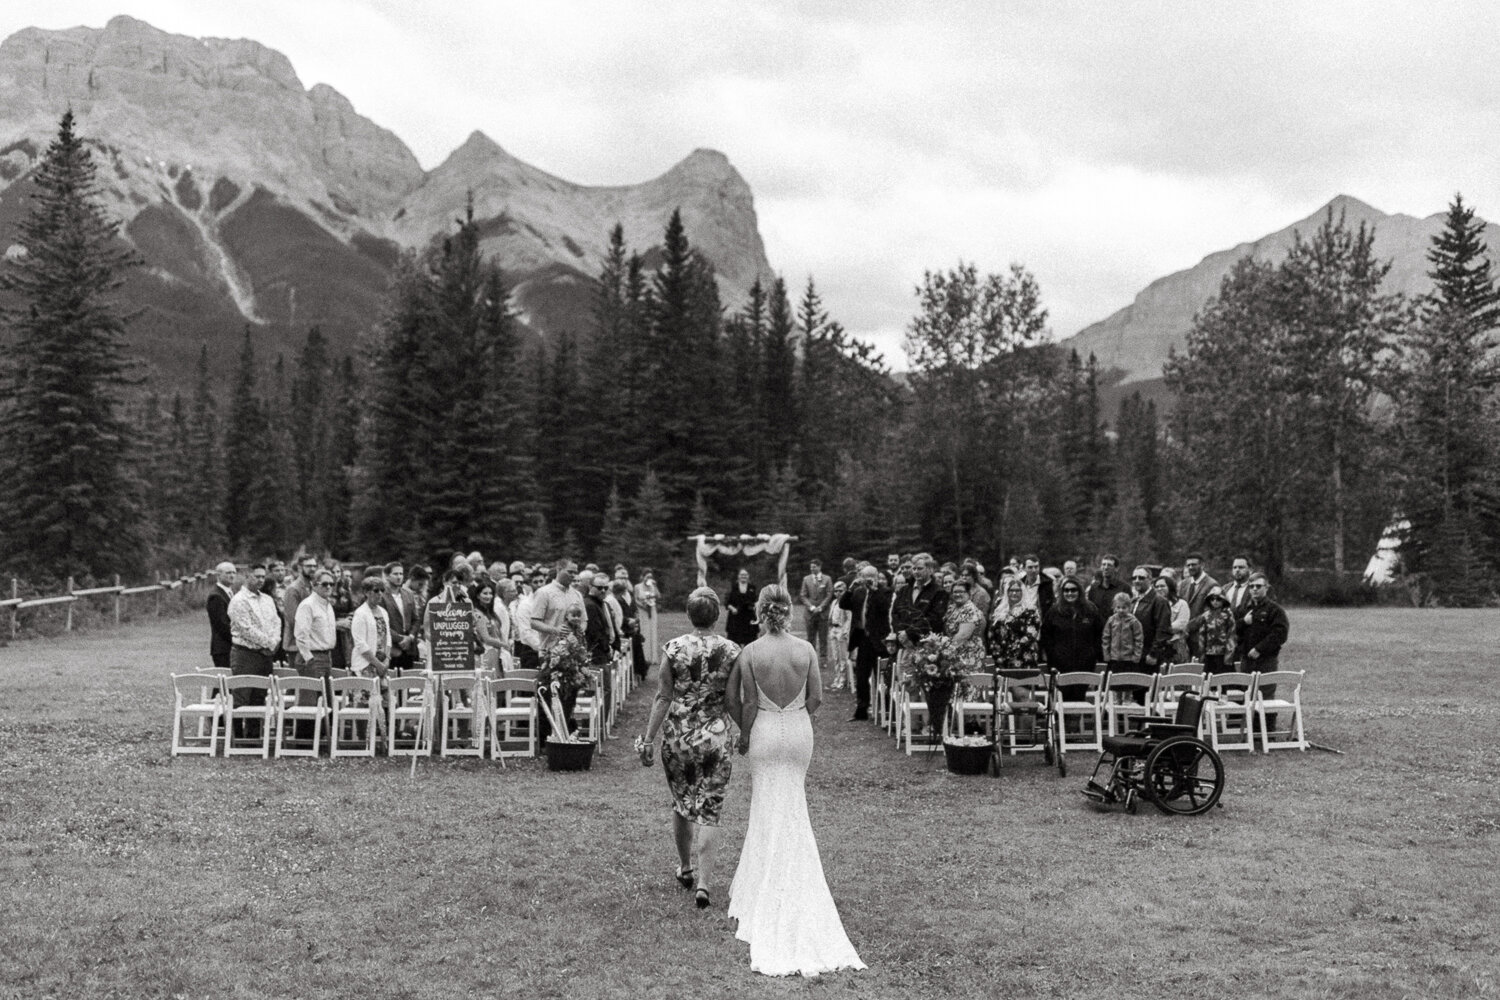 56-Canmore-Alberta-Real-Wedding-Best-Wedding-Photographers-77.JPG